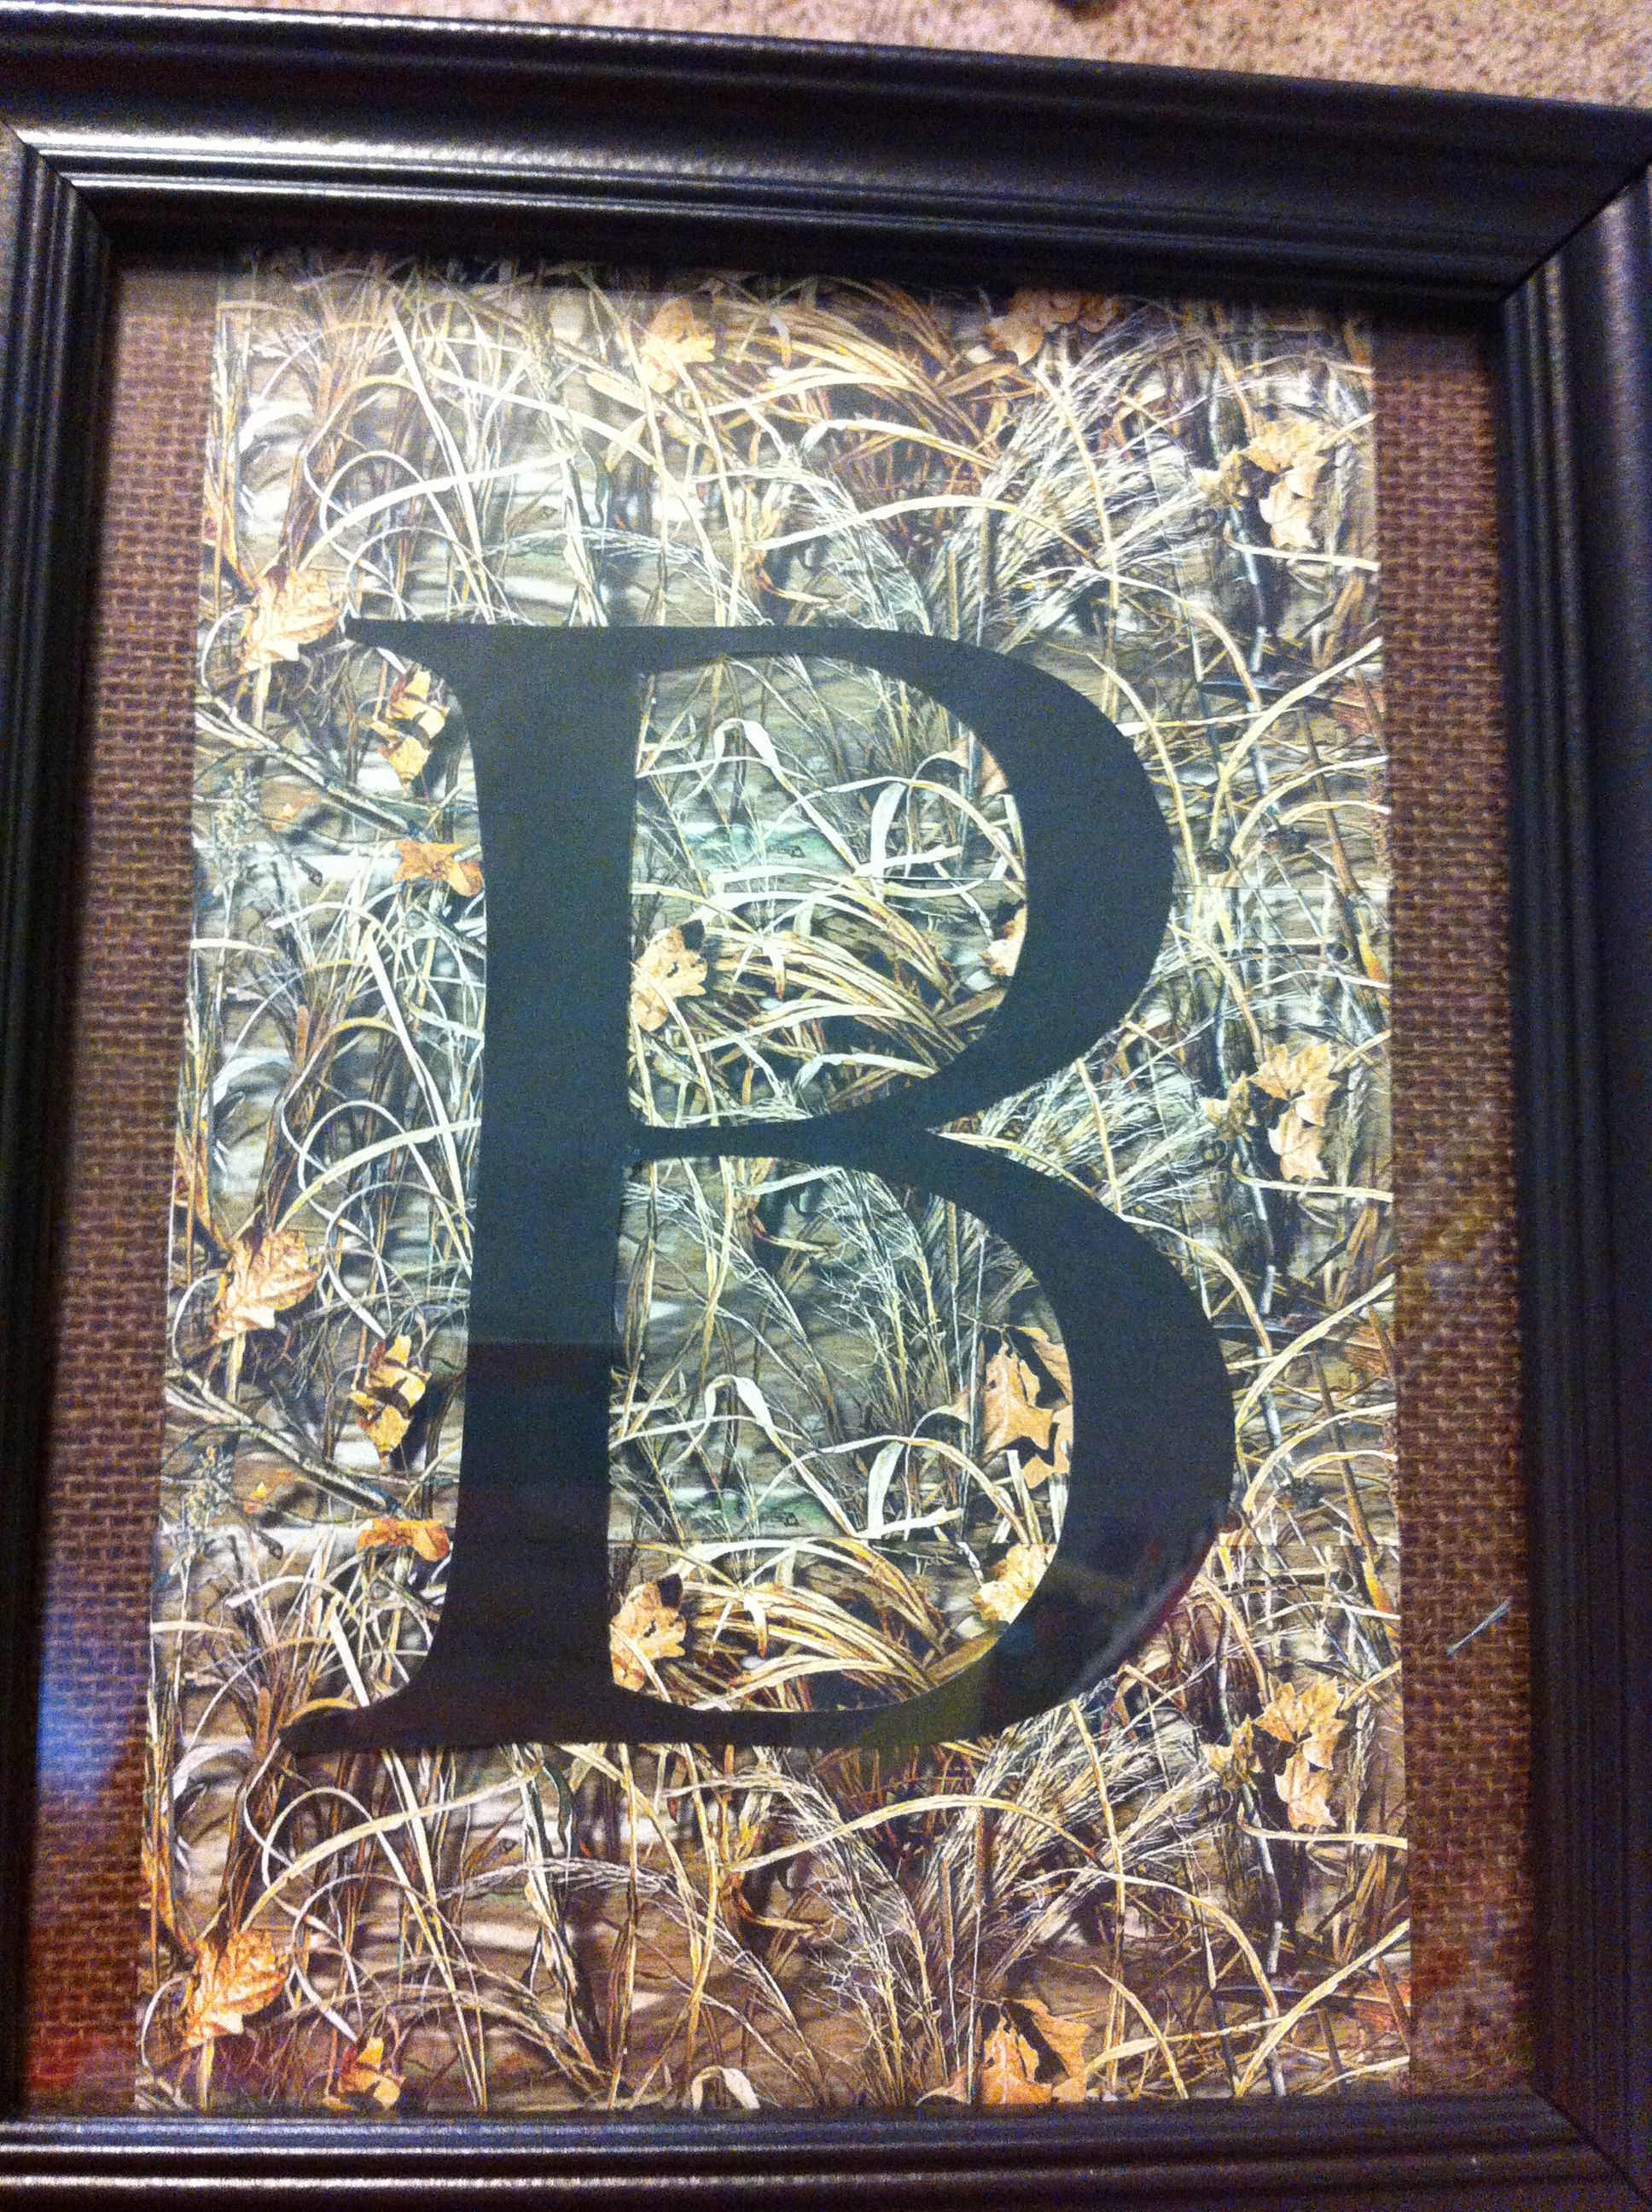 Made This For A Duck Hunting Baby Shower